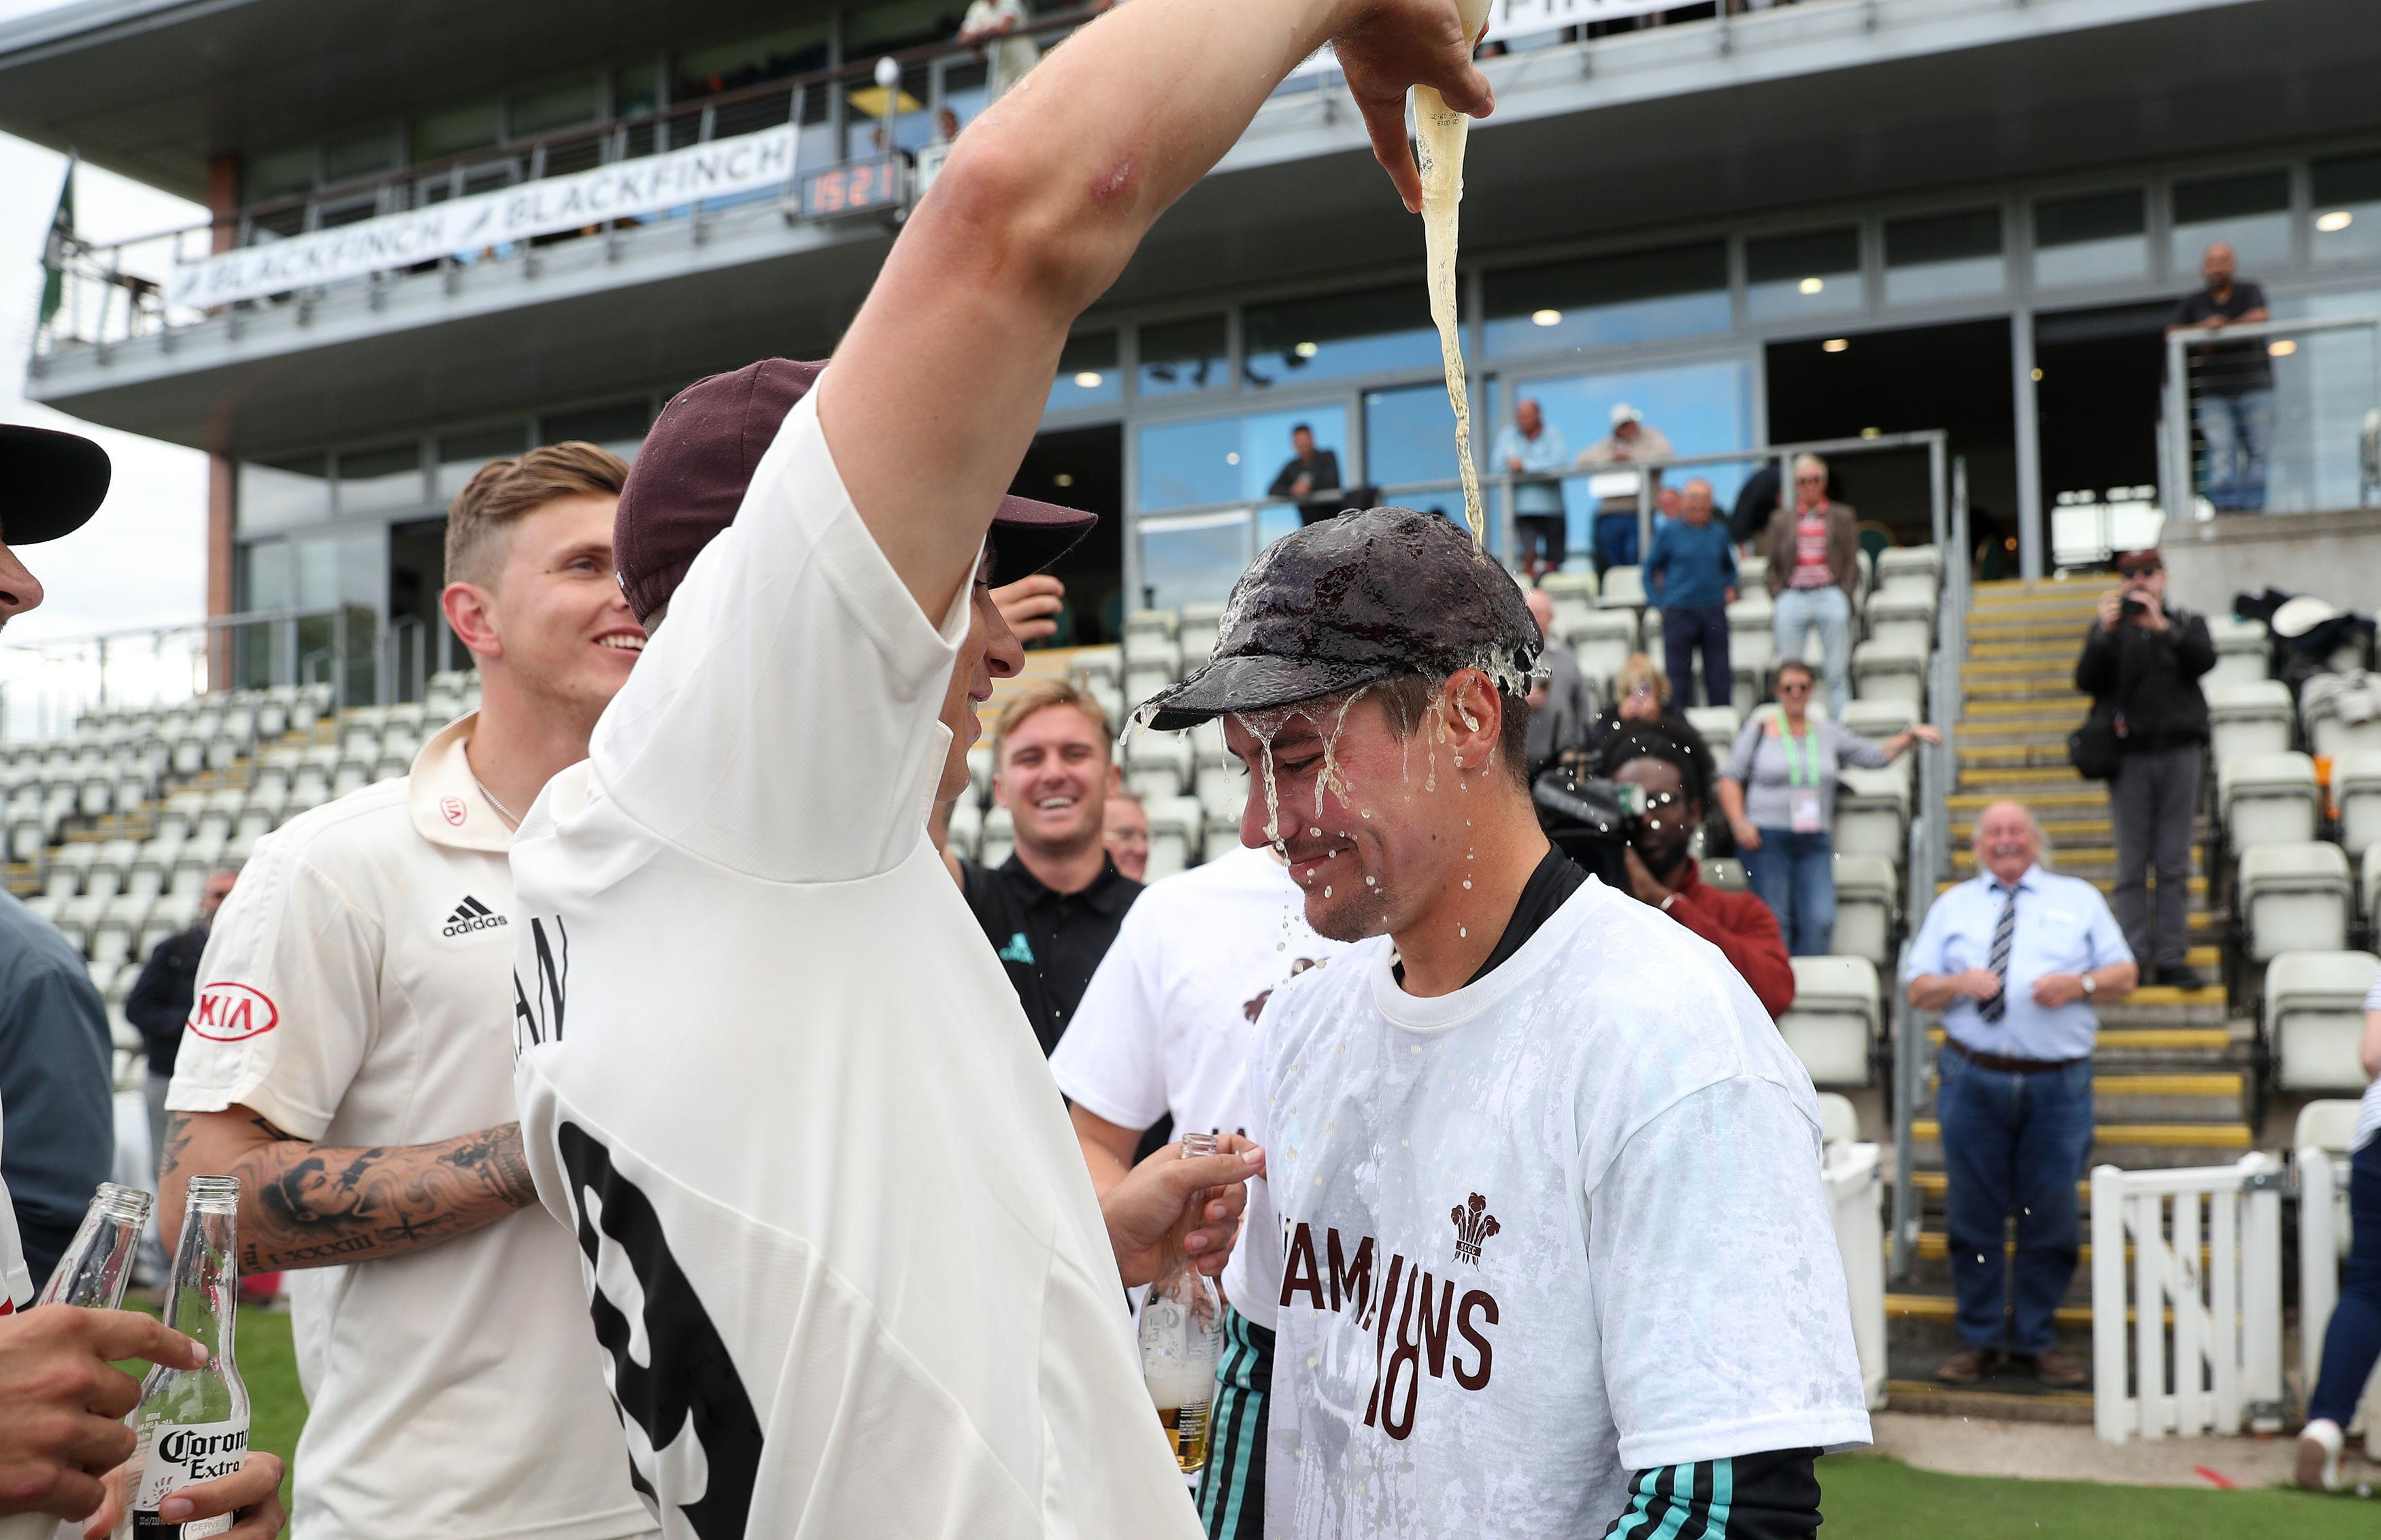 County champions Surrey were gunning for a tenth-straight win